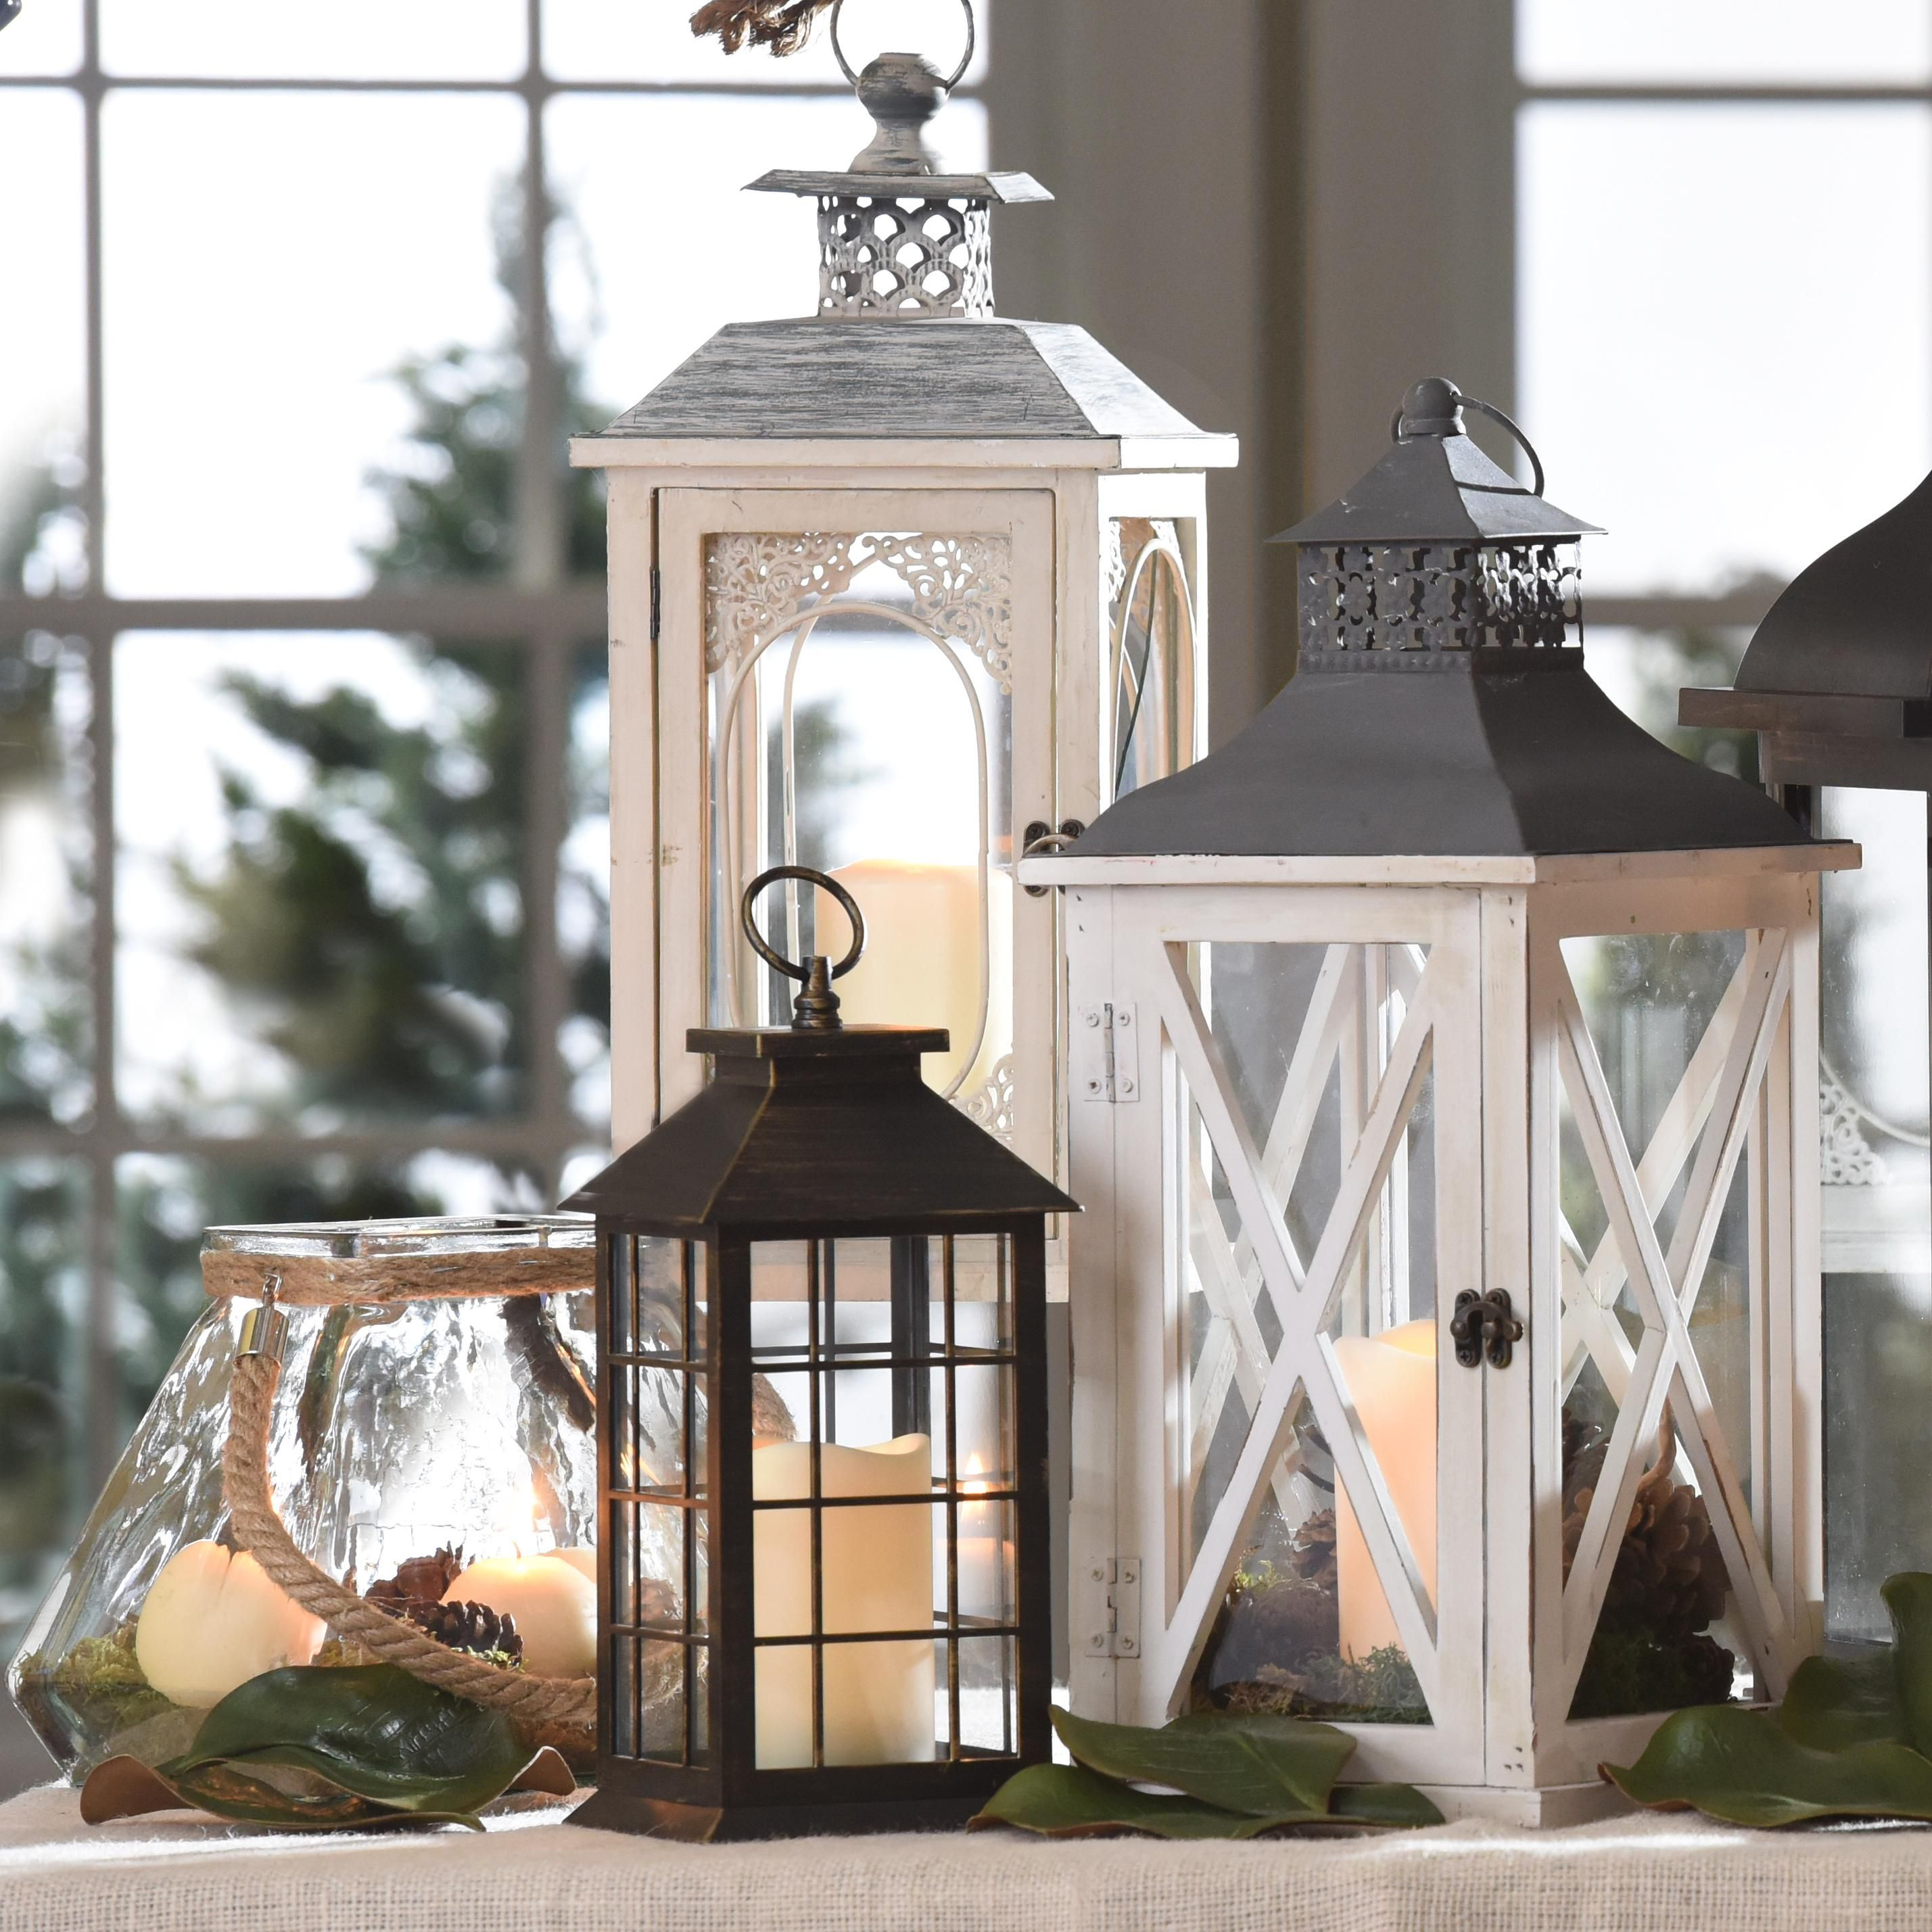 decorative christmas shops do metal tree xxx decor product lantern andthat